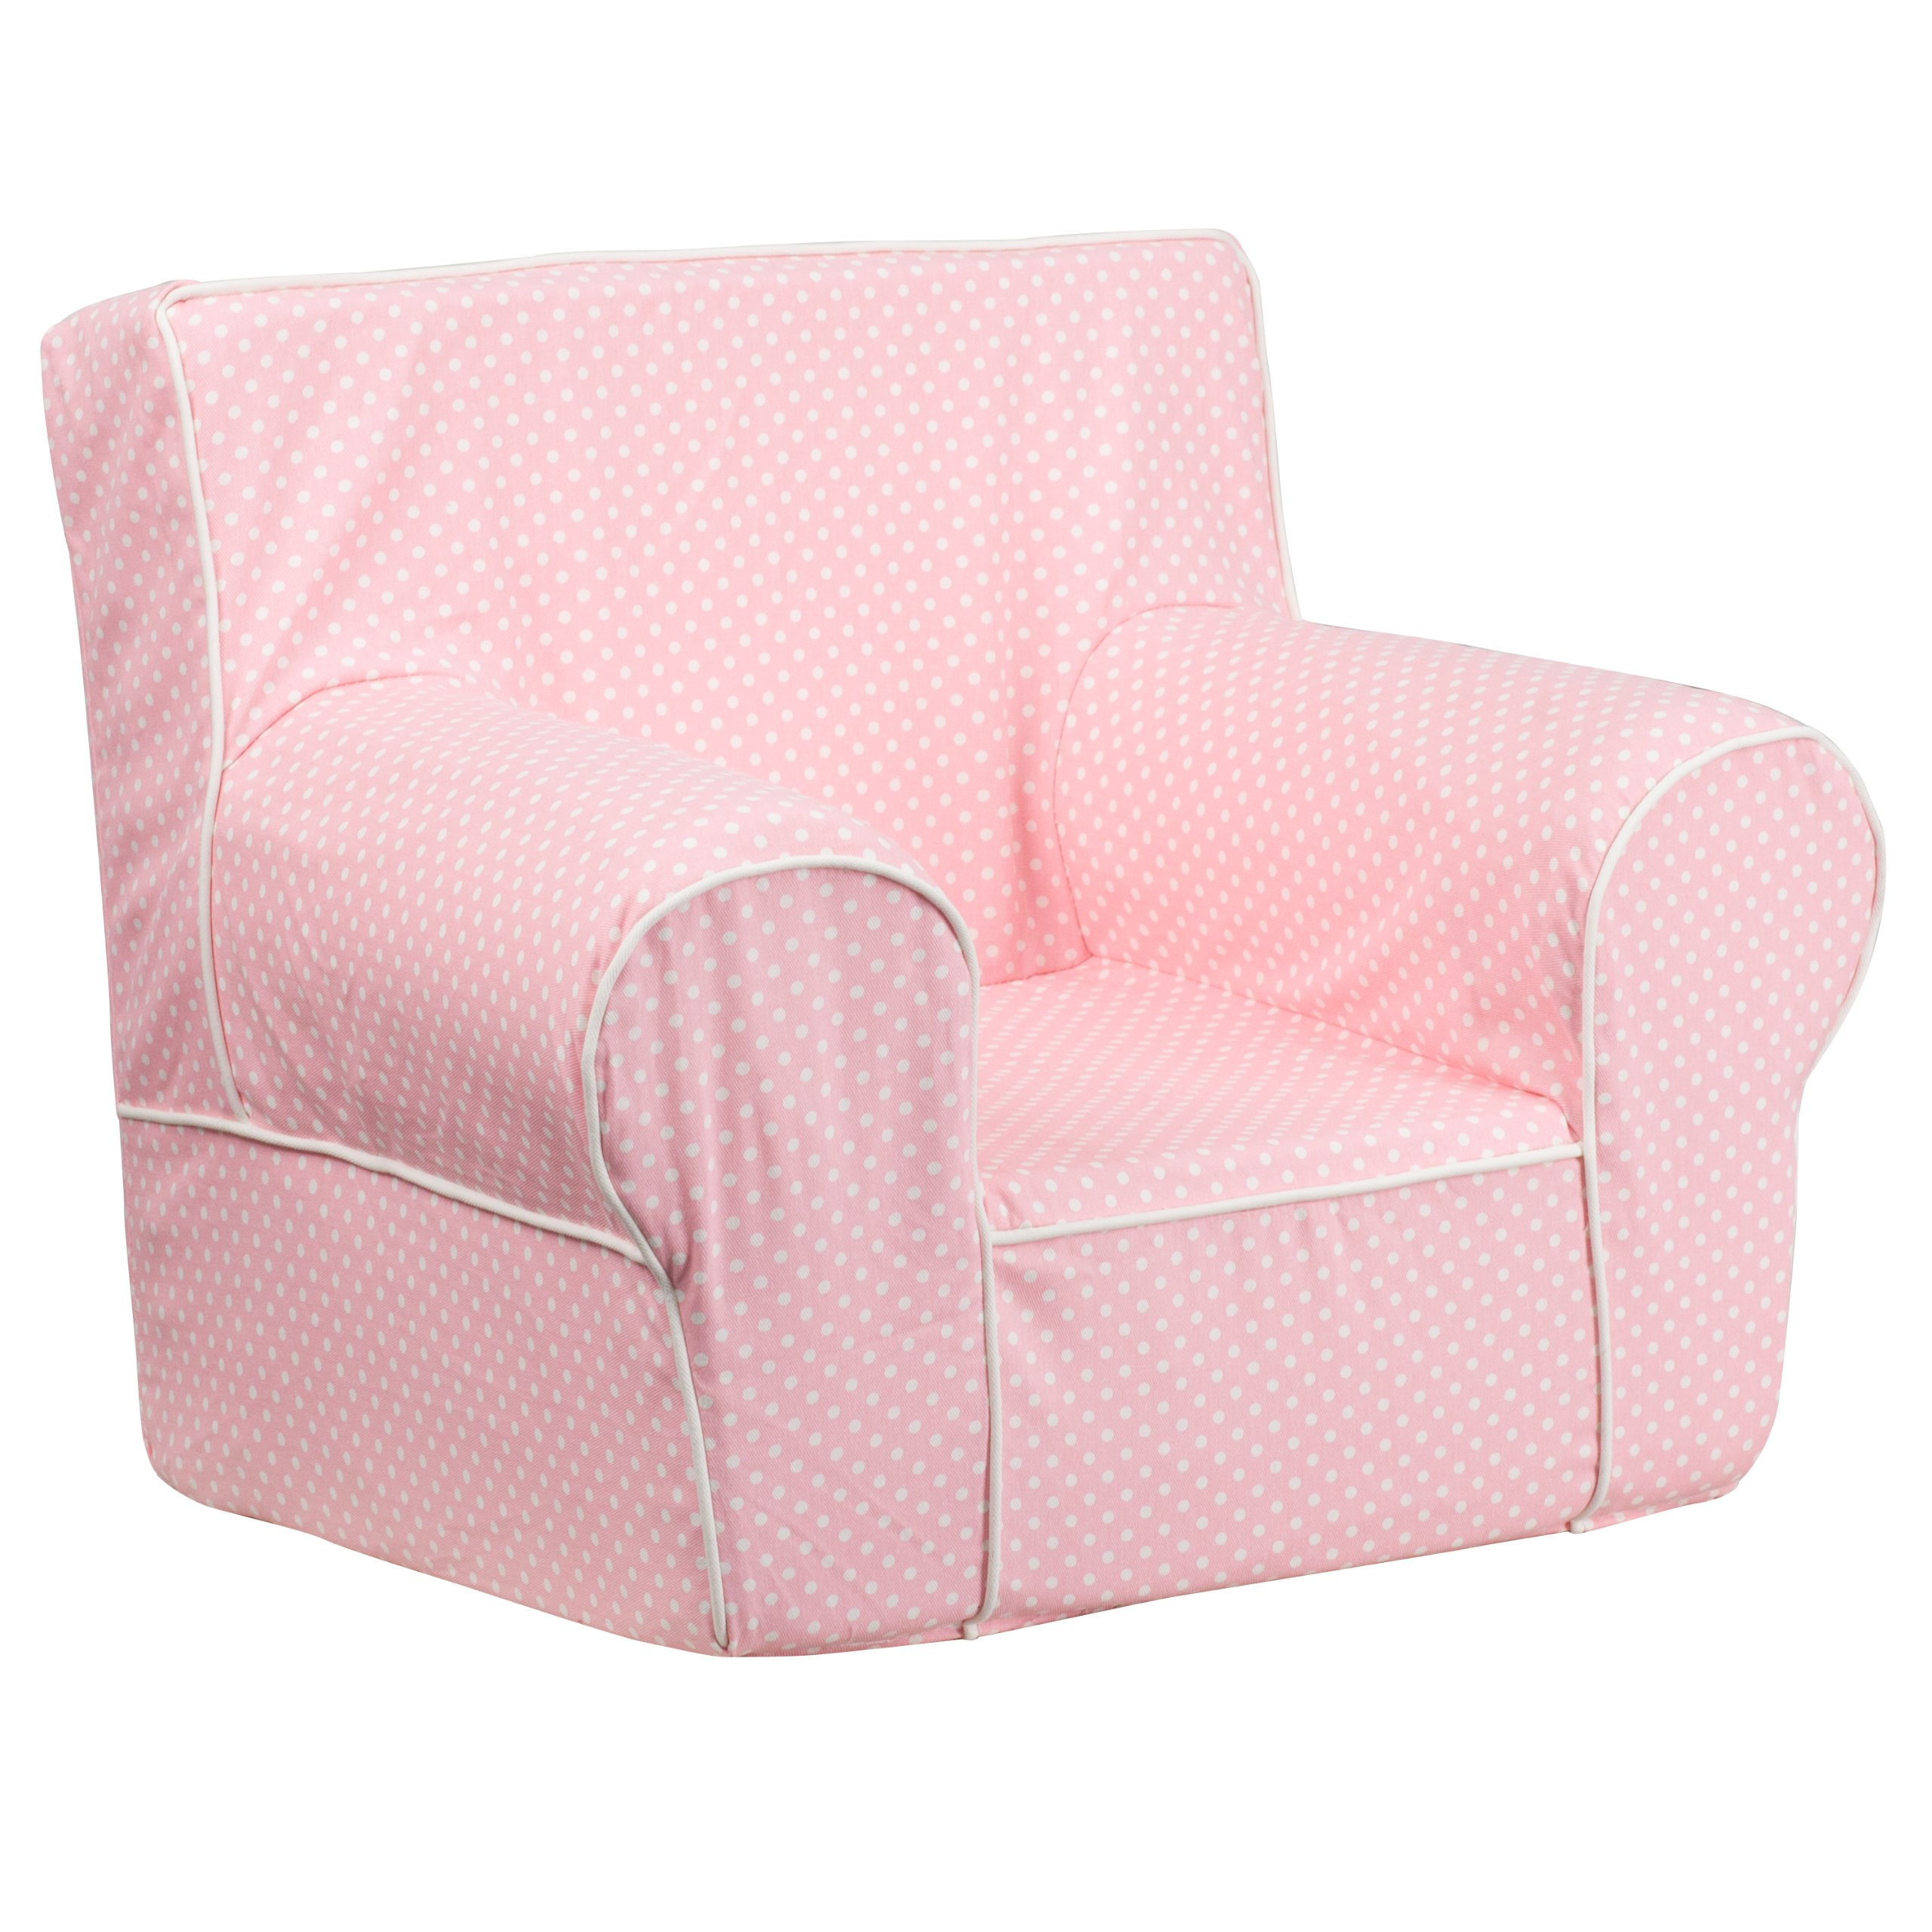 Flash Furniture Small Light Pink Dot Kids Chair with White Piping